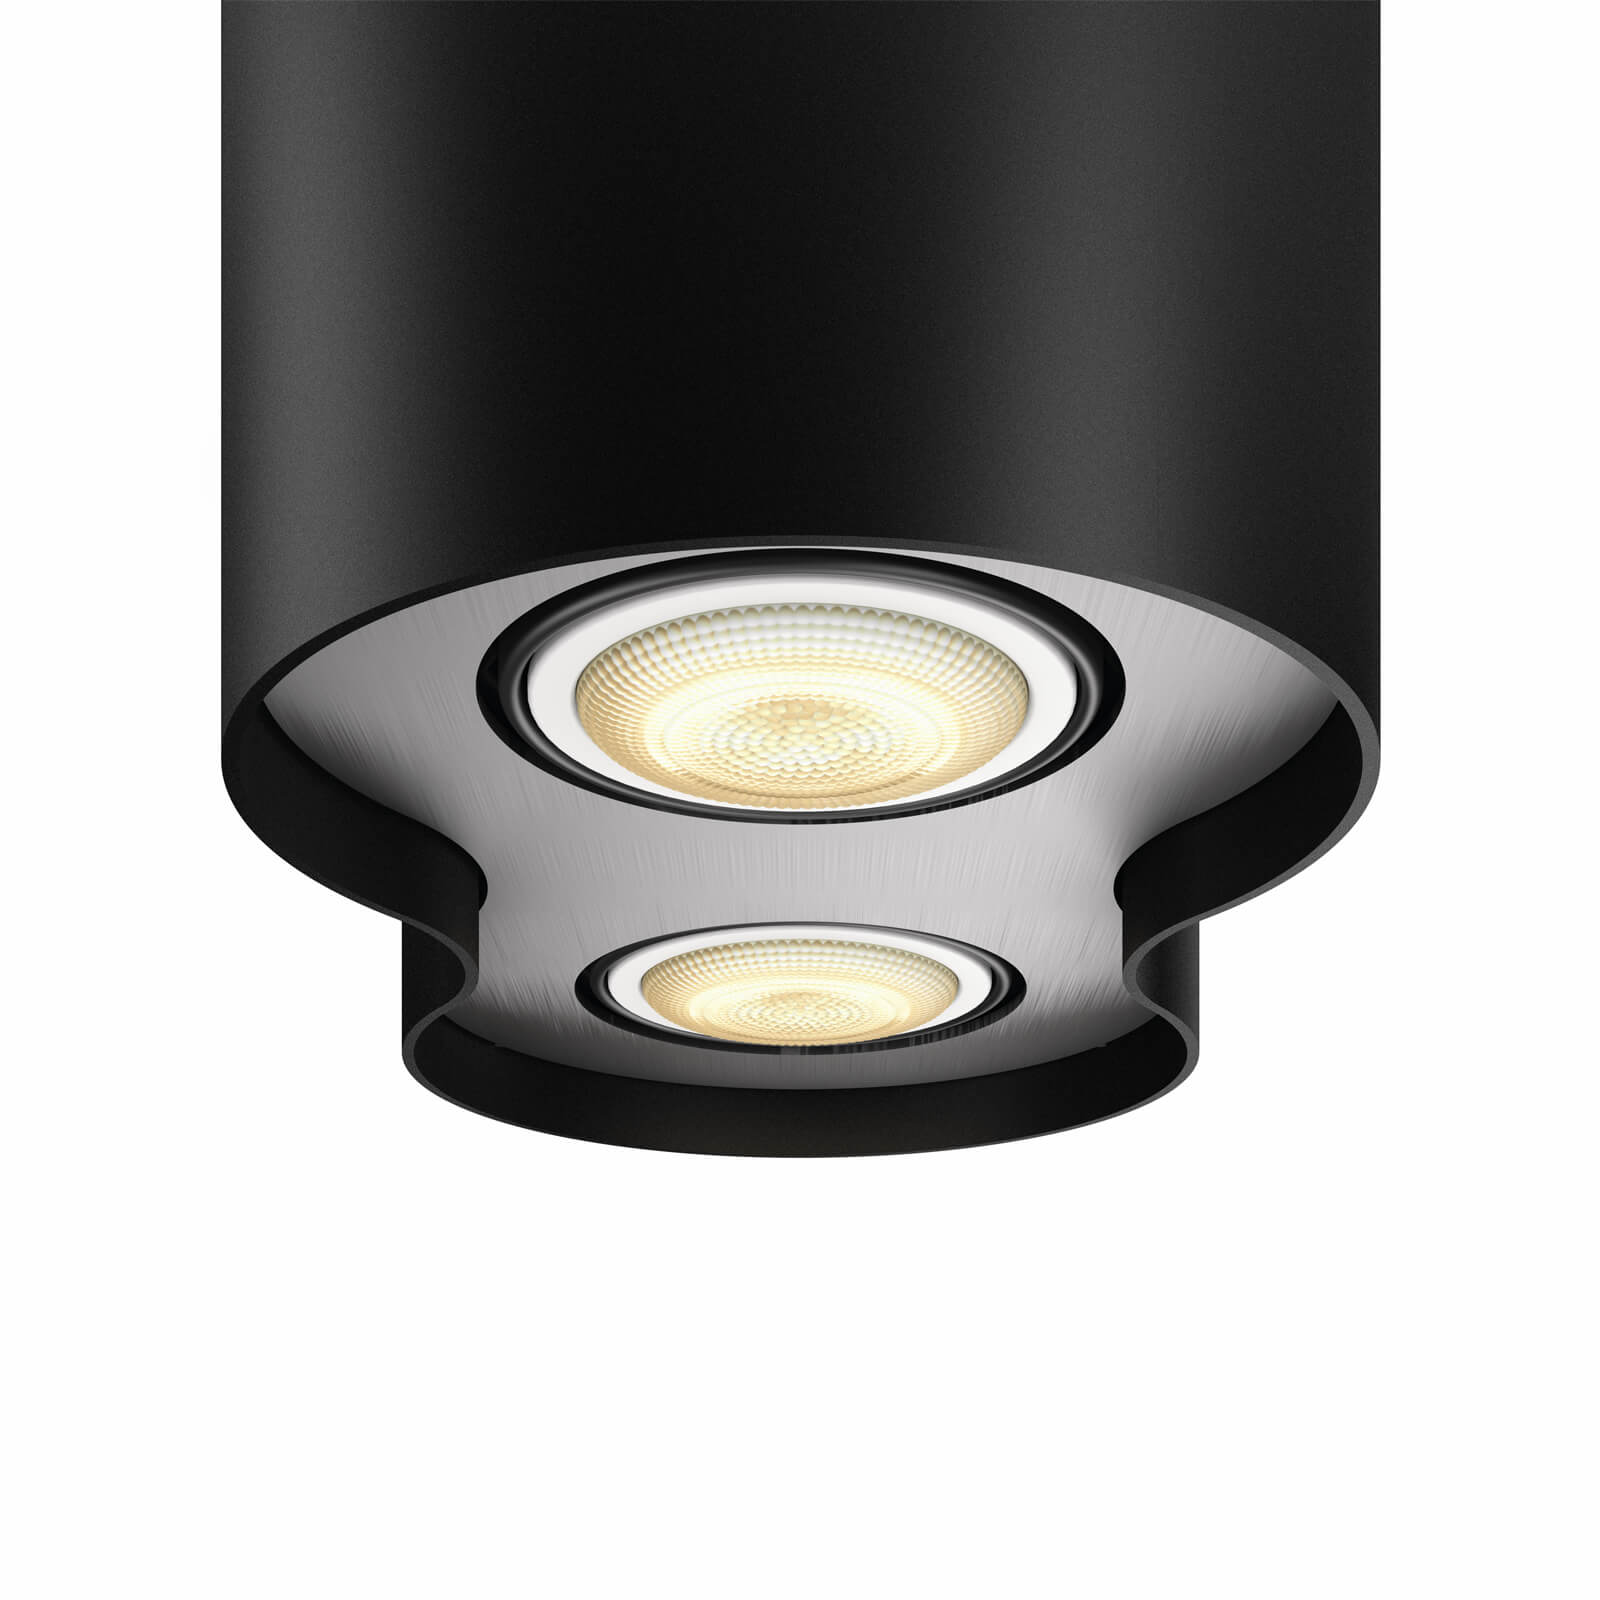 philips hue pillar 2 spot zwart white ambiance incl dim switch. Black Bedroom Furniture Sets. Home Design Ideas